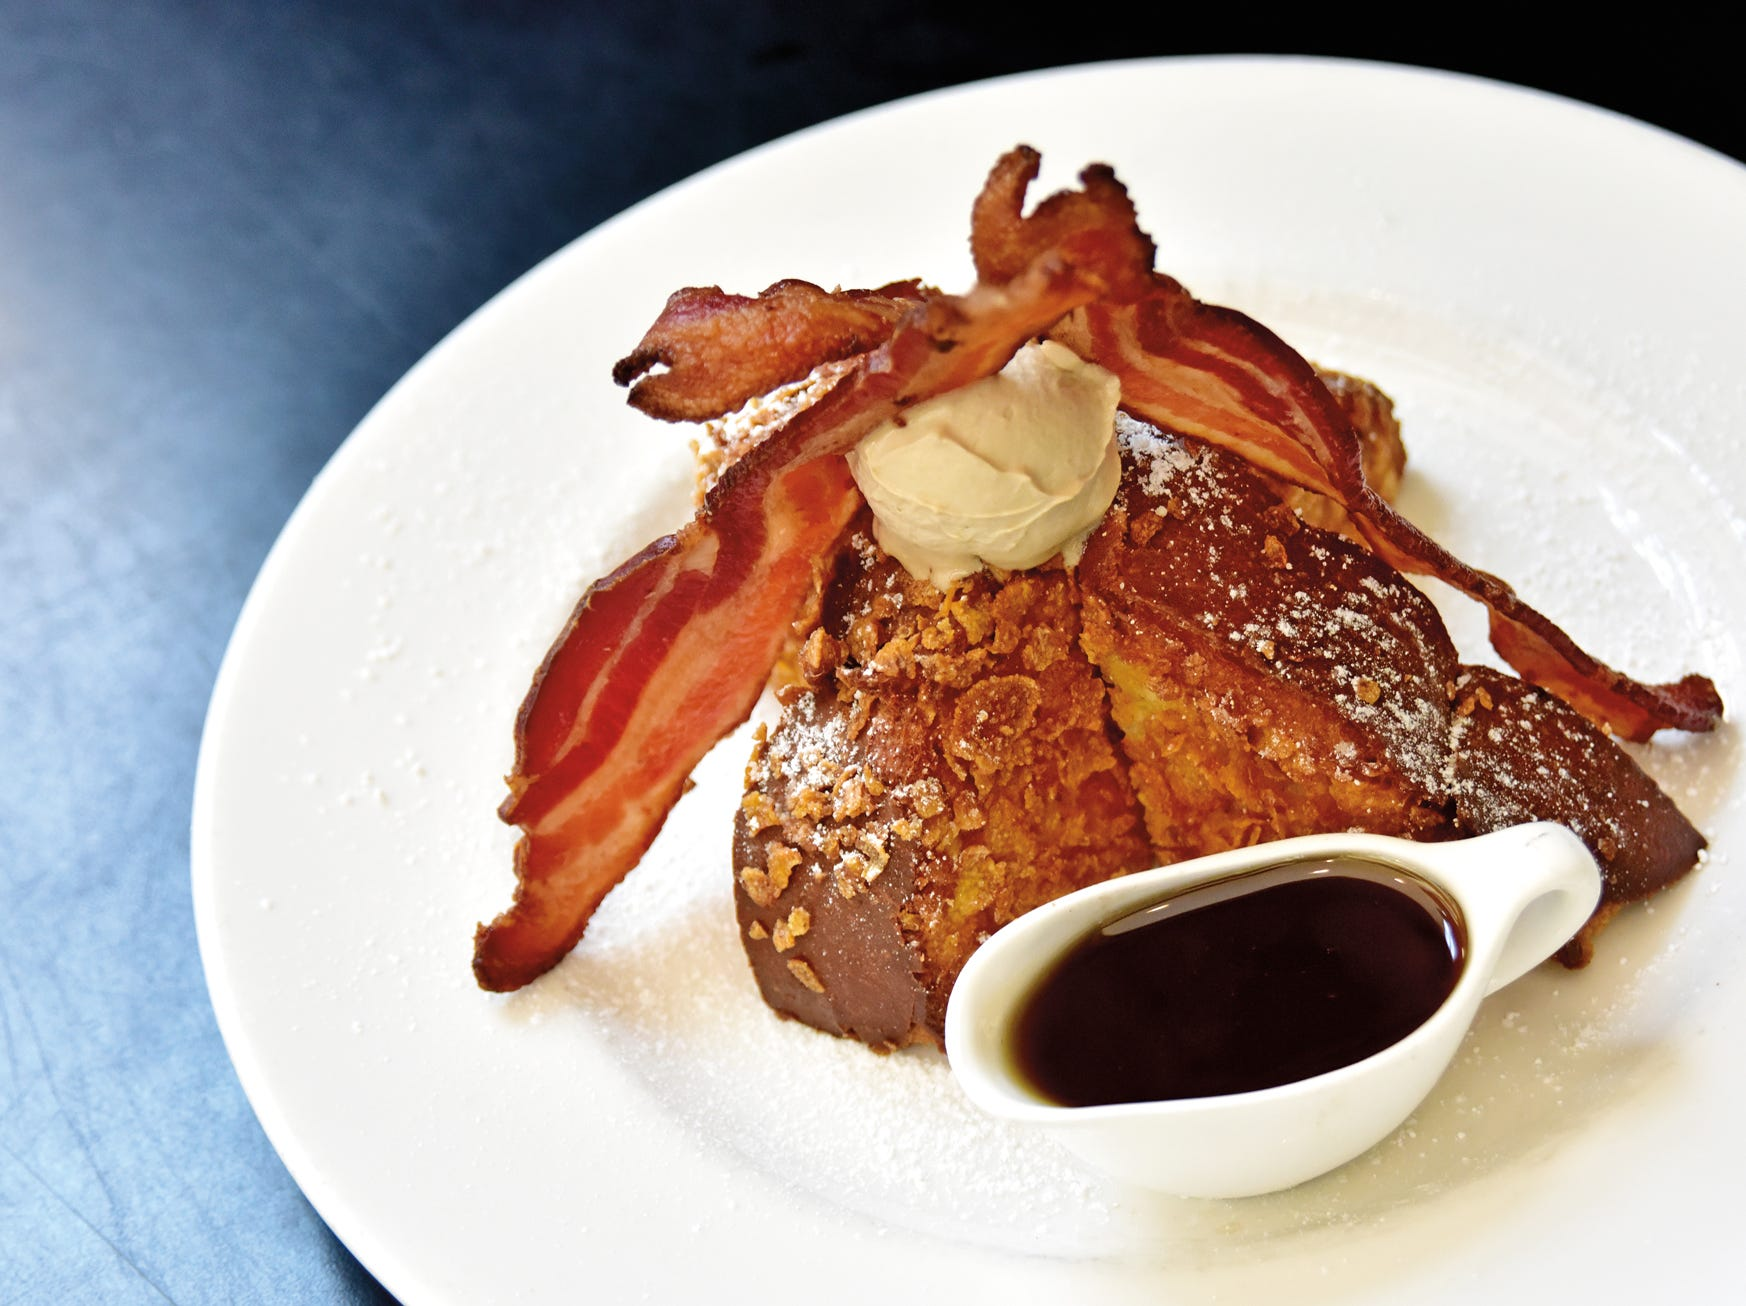 French toast from the brunch menu at Hall's Chophouse in Greenville.